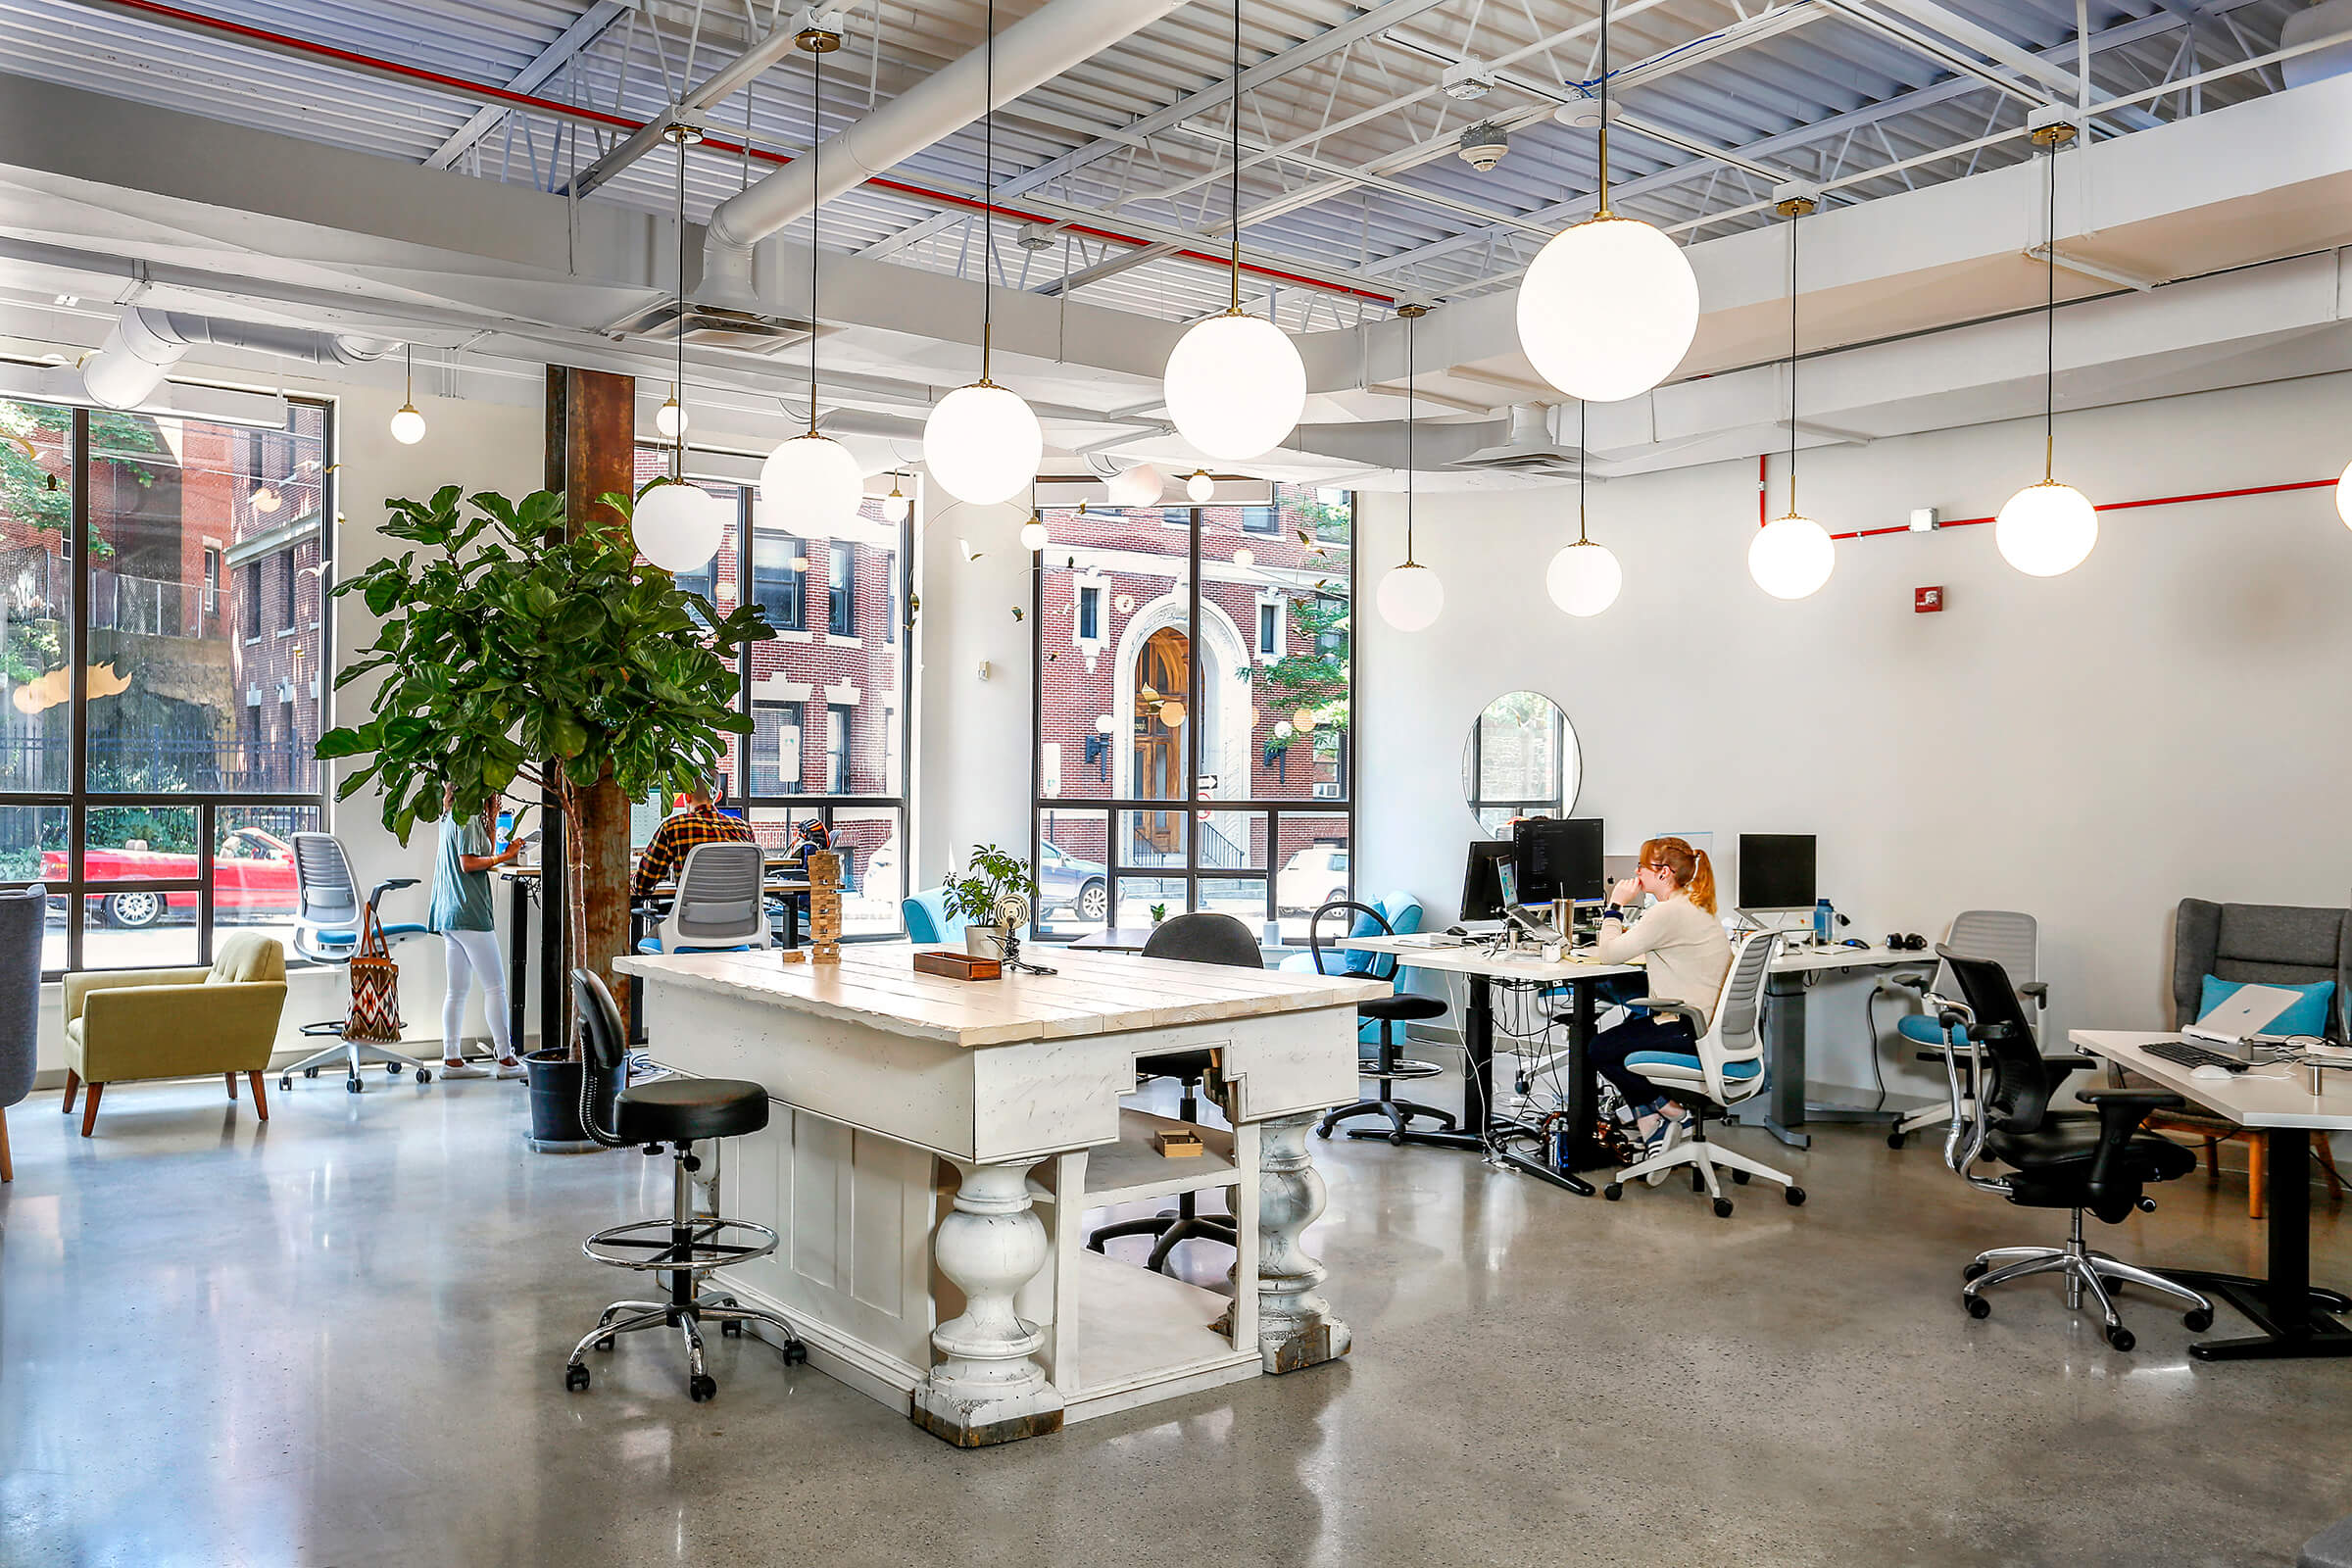 Architectural Photography of iBec Creative, the work space in Portland, Maine